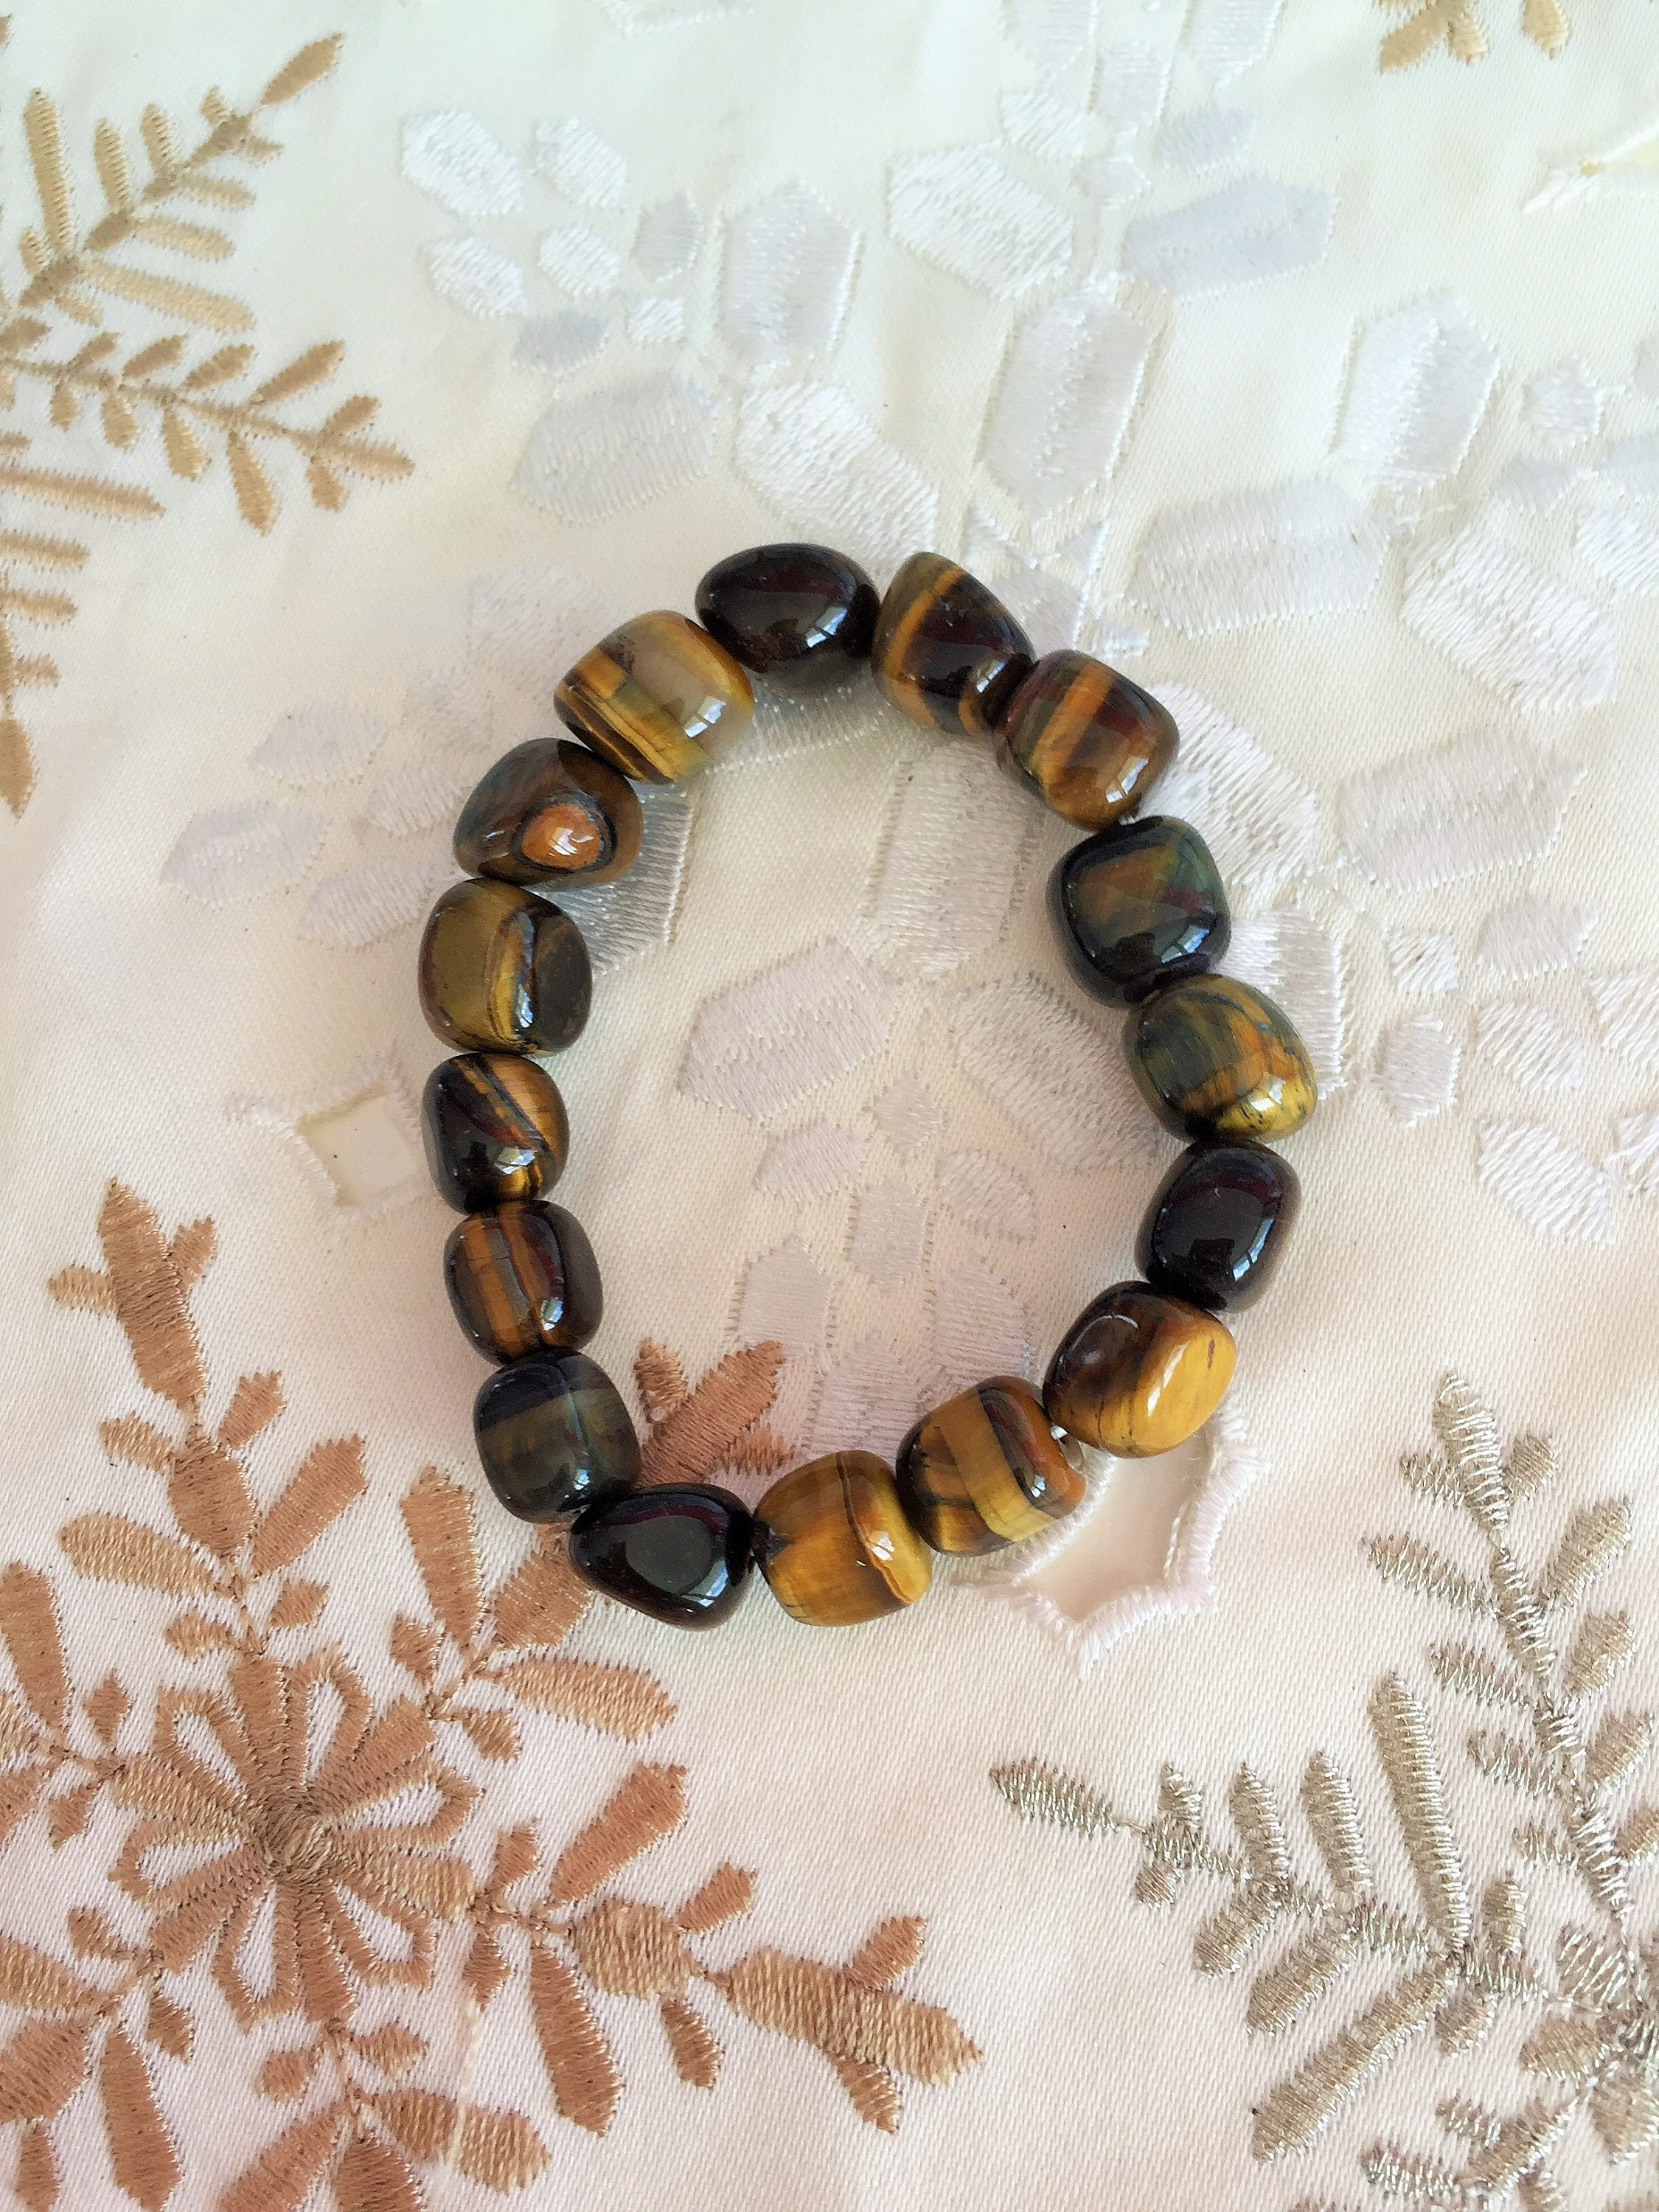 fabgemsworld labradorite from peach black product gemstone sunstone elastic bracelet gifts beads bead